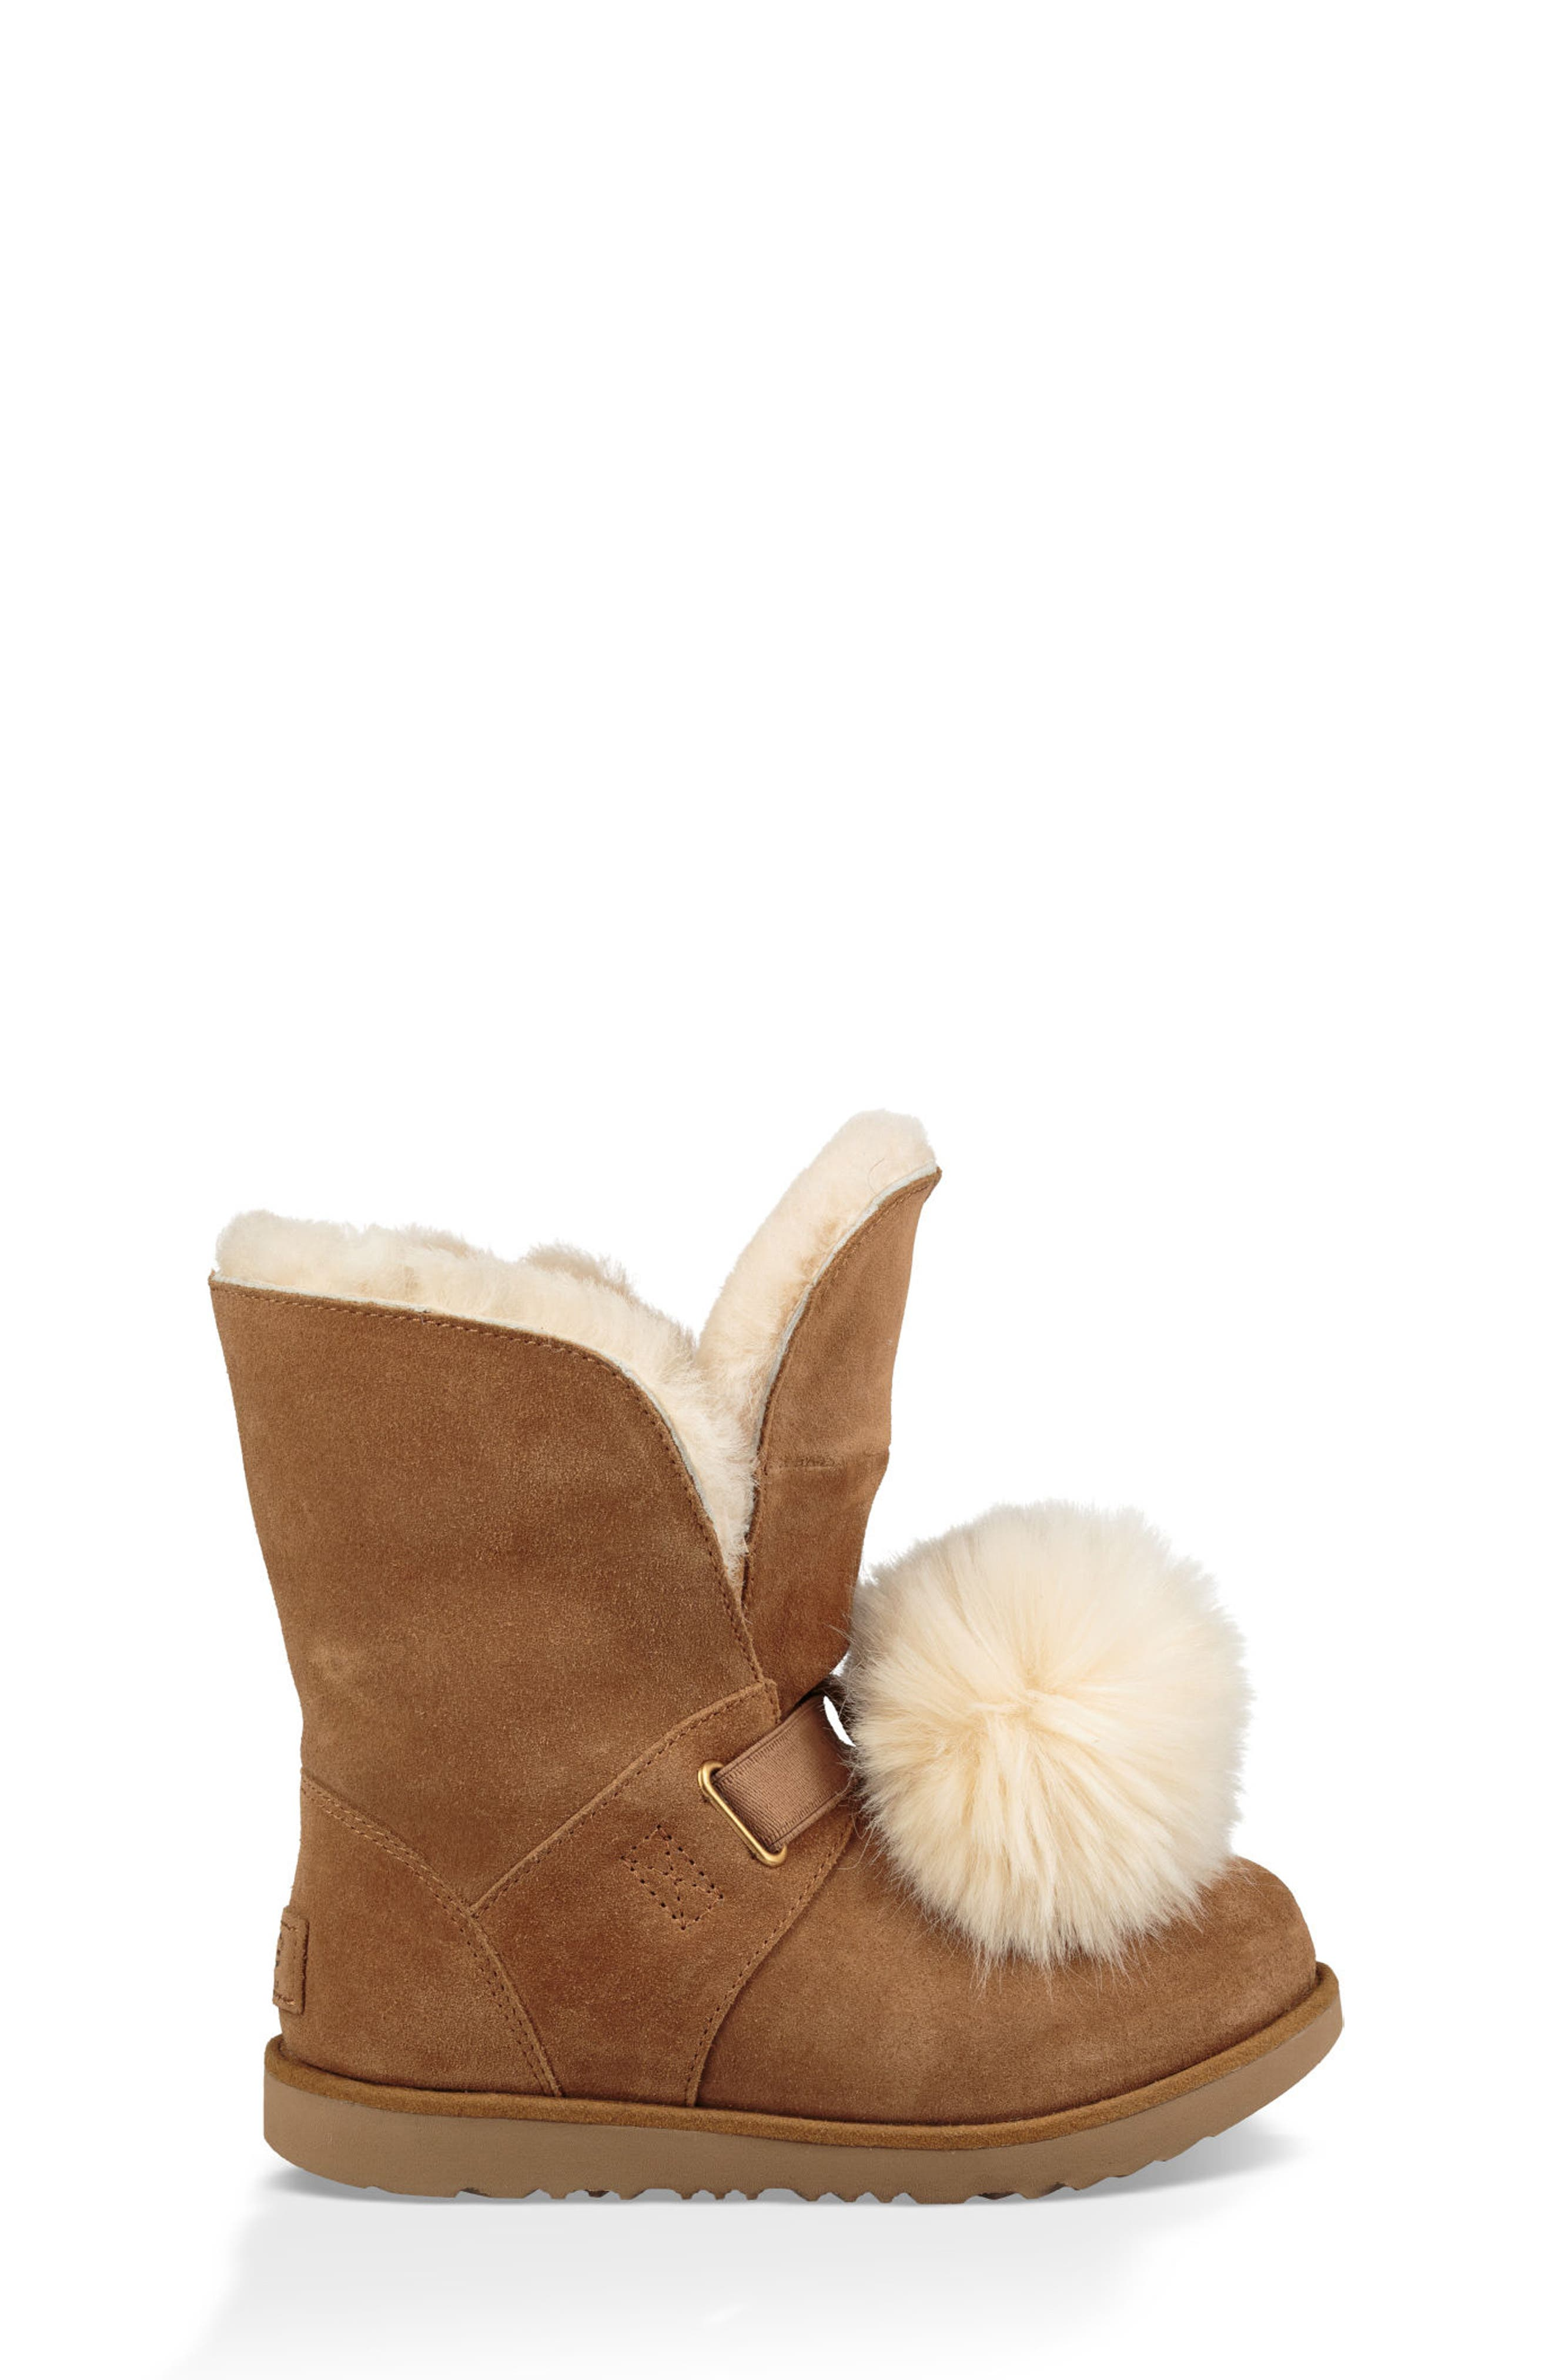 Isley Genuine Shearling Waterproof Pom Boot,                             Alternate thumbnail 3, color,                             219